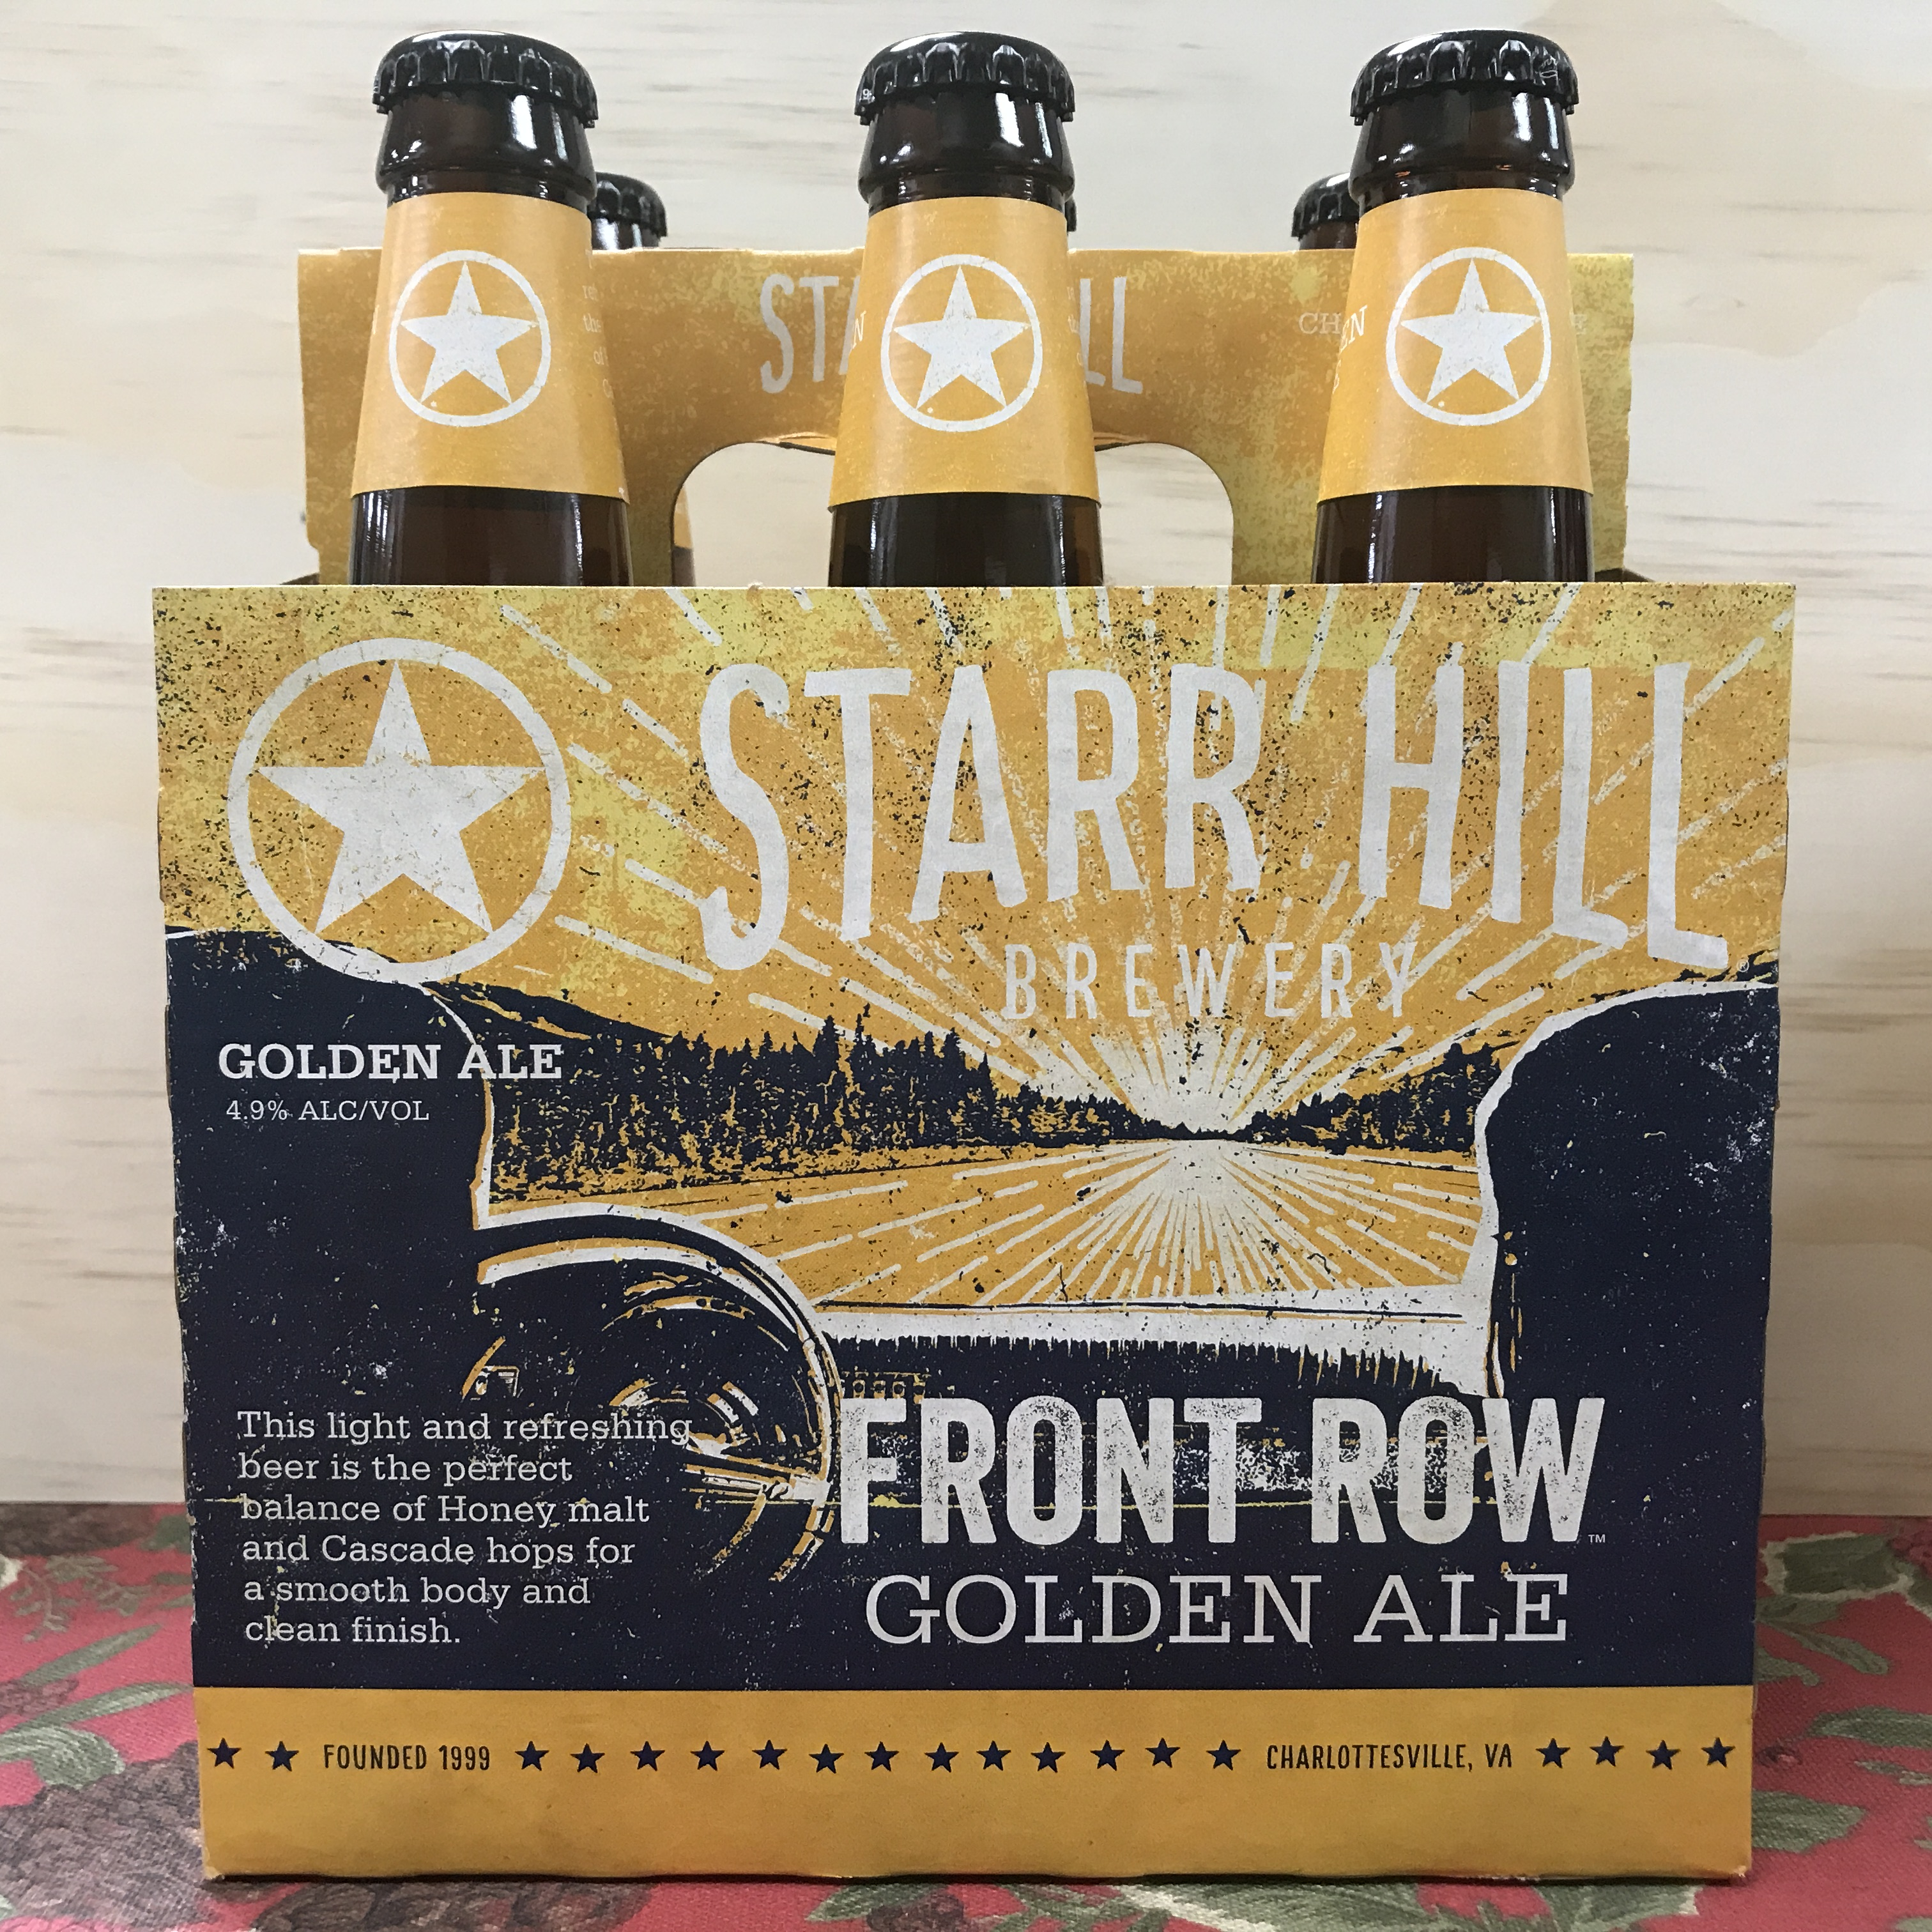 Starr Hill Front Row Golden Ale 6 x 12oz bottles